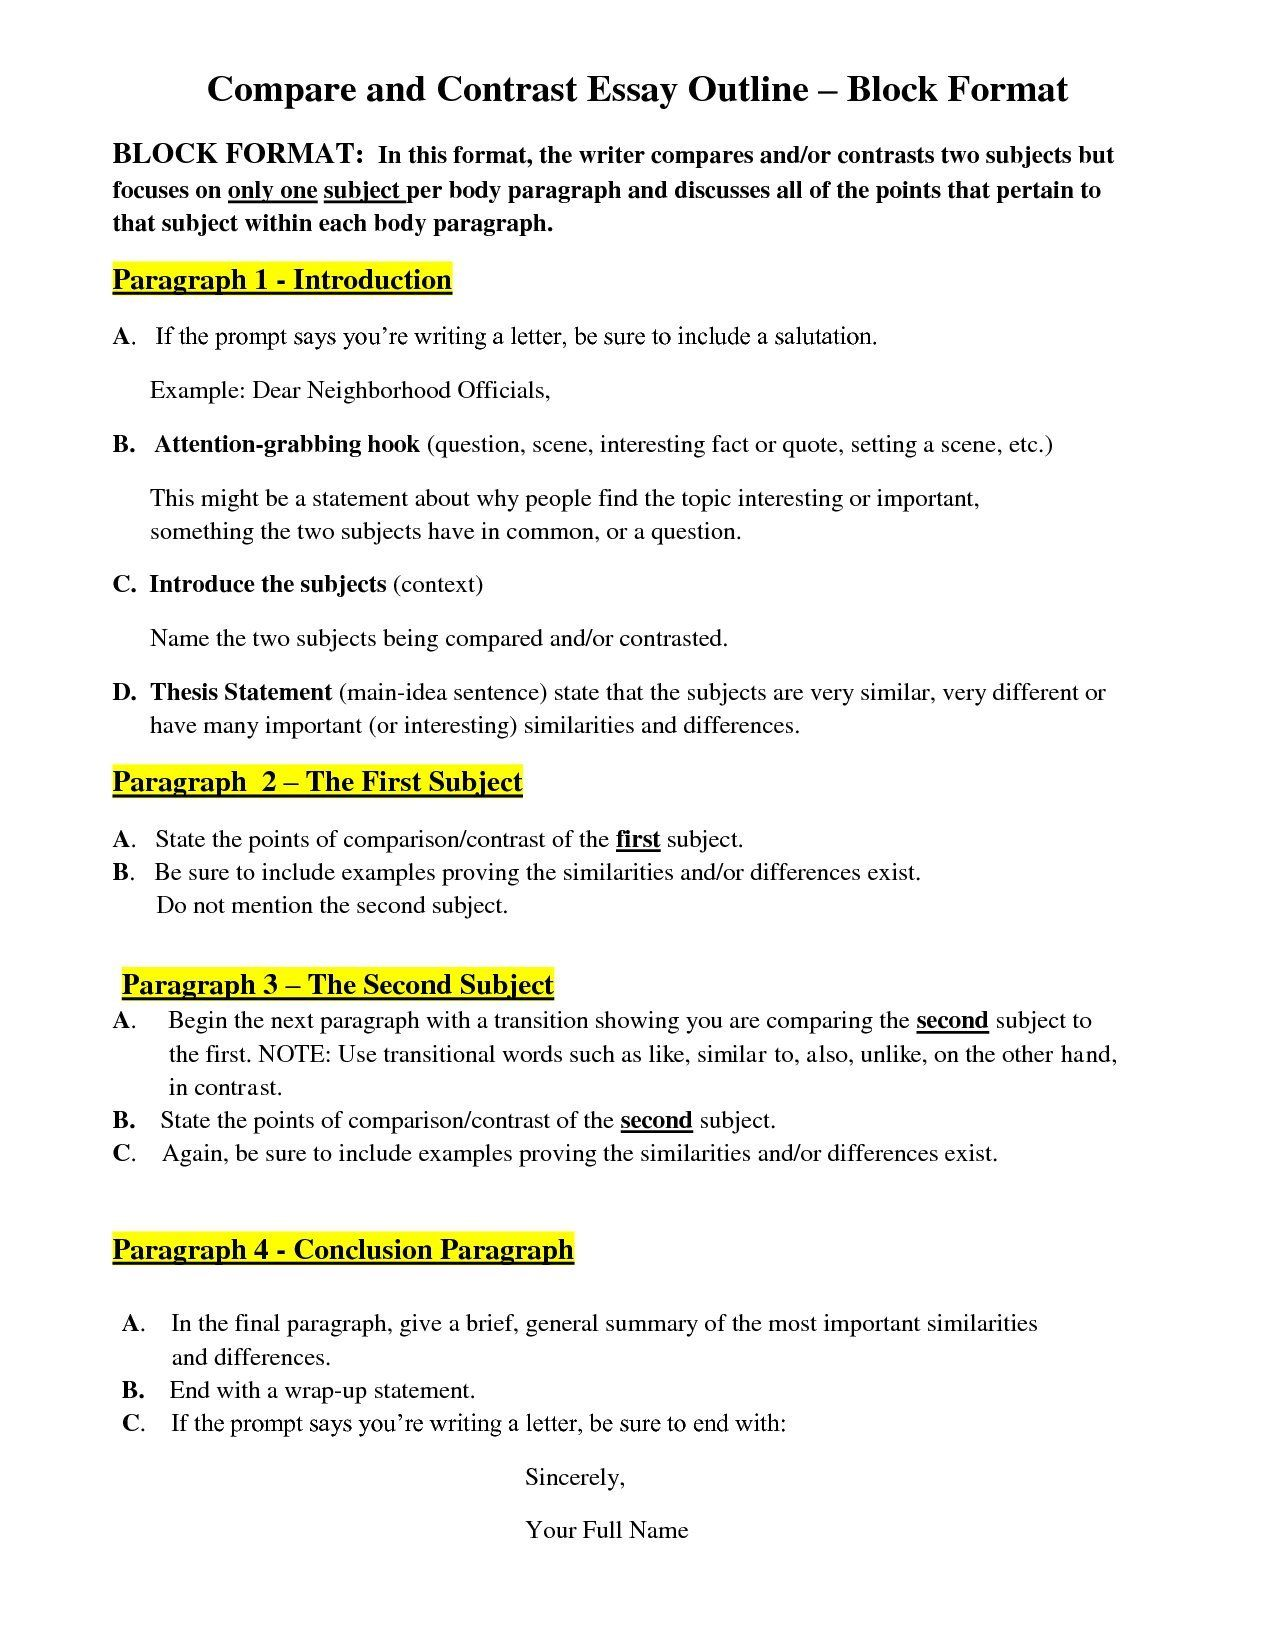 007 Compare And Contrast Essay Frightening Outline Block Method Ideas High School Template For Middle Full